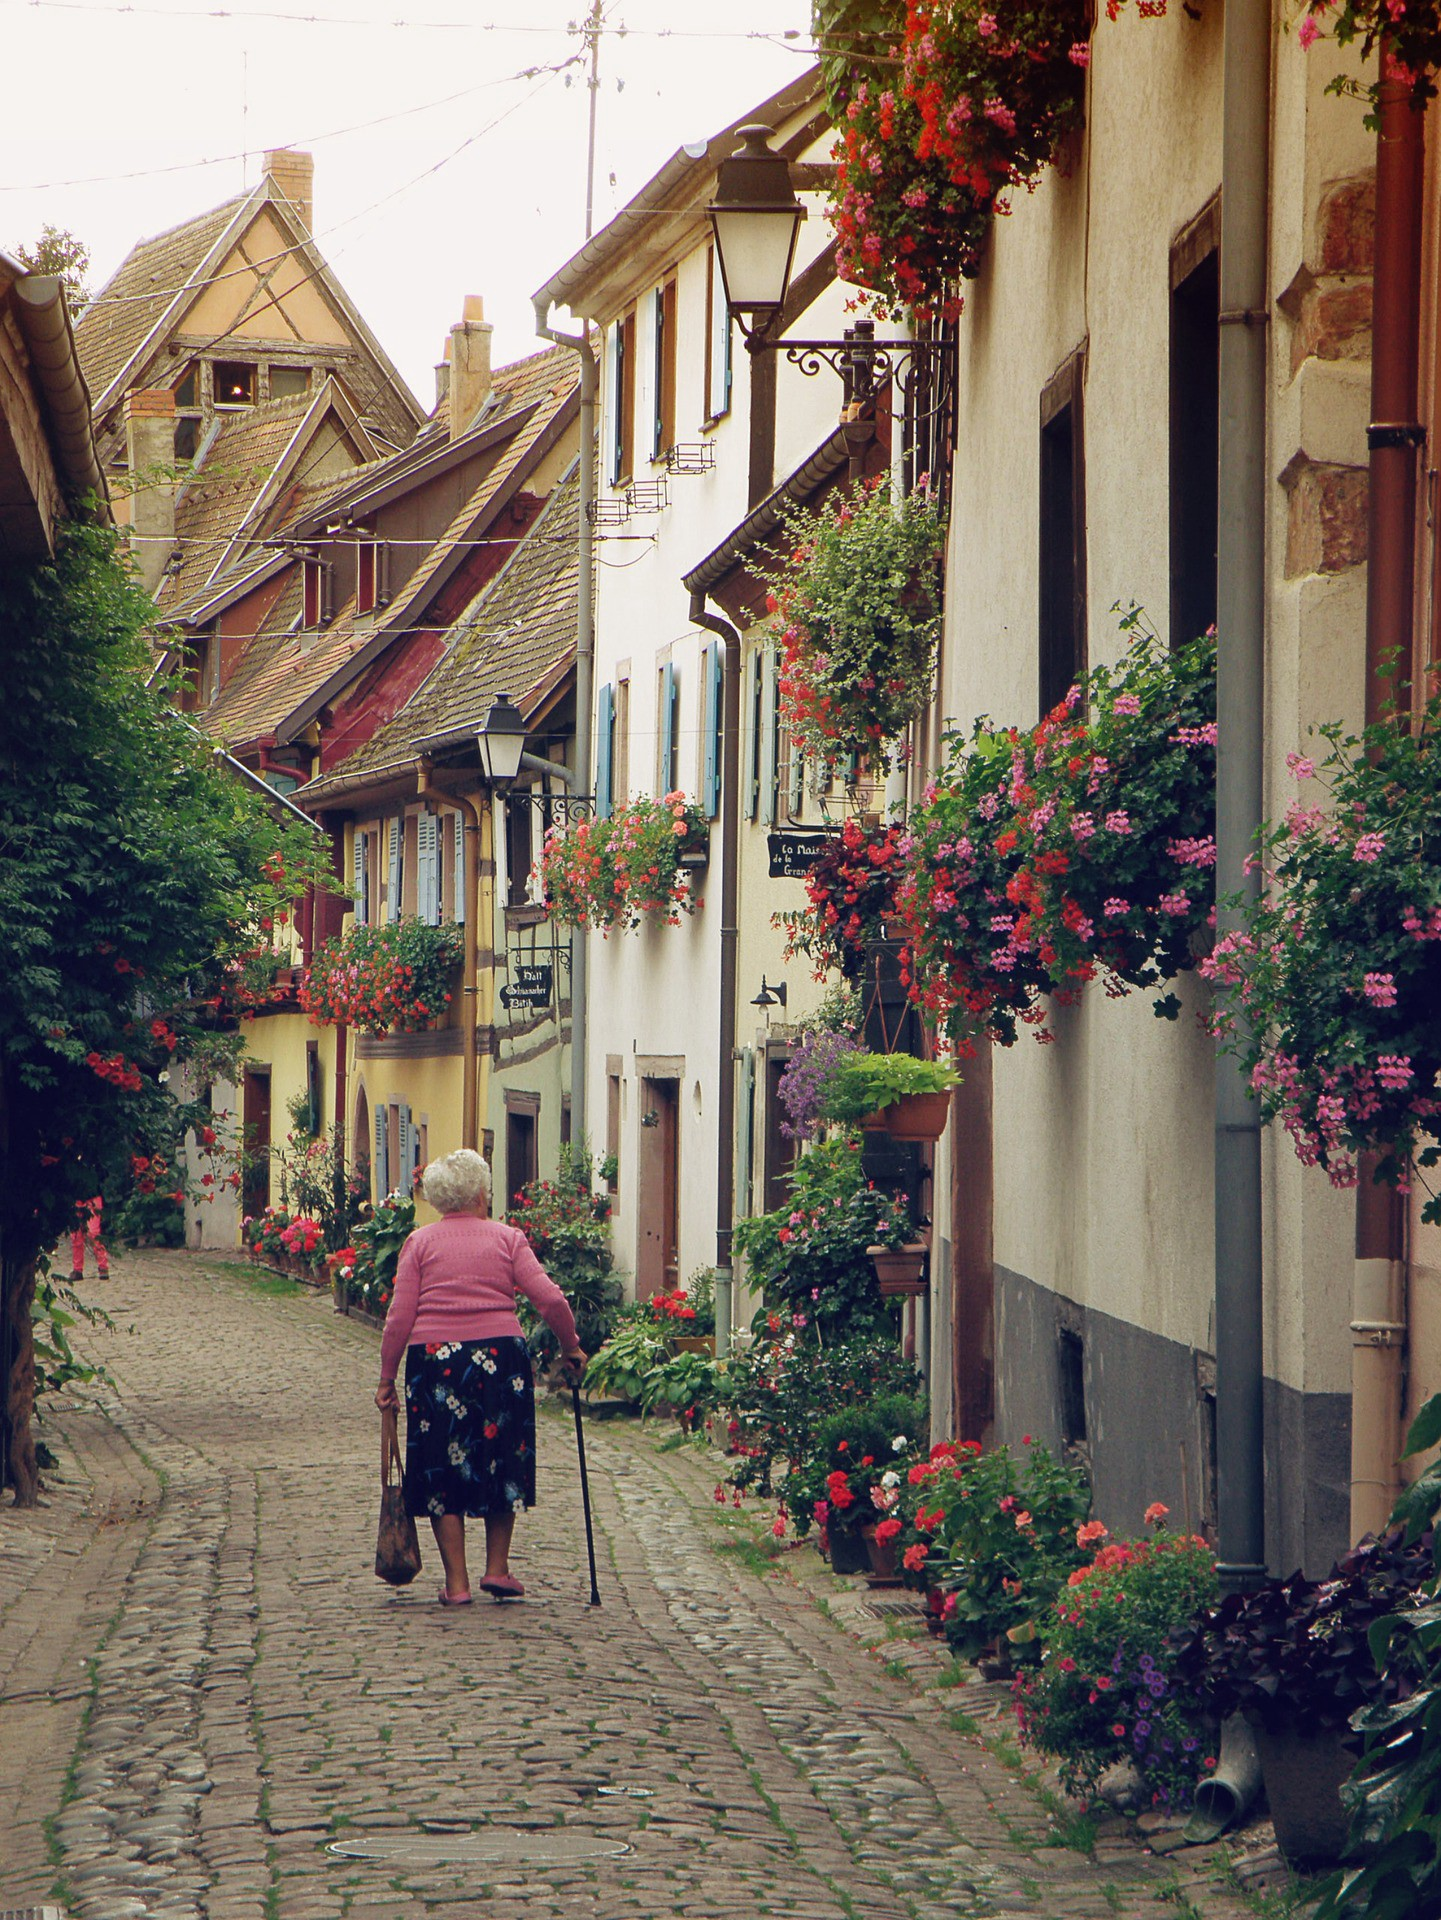 An elderly woman walking along a cobblestone street lined with houses showing off numerous flower boxes